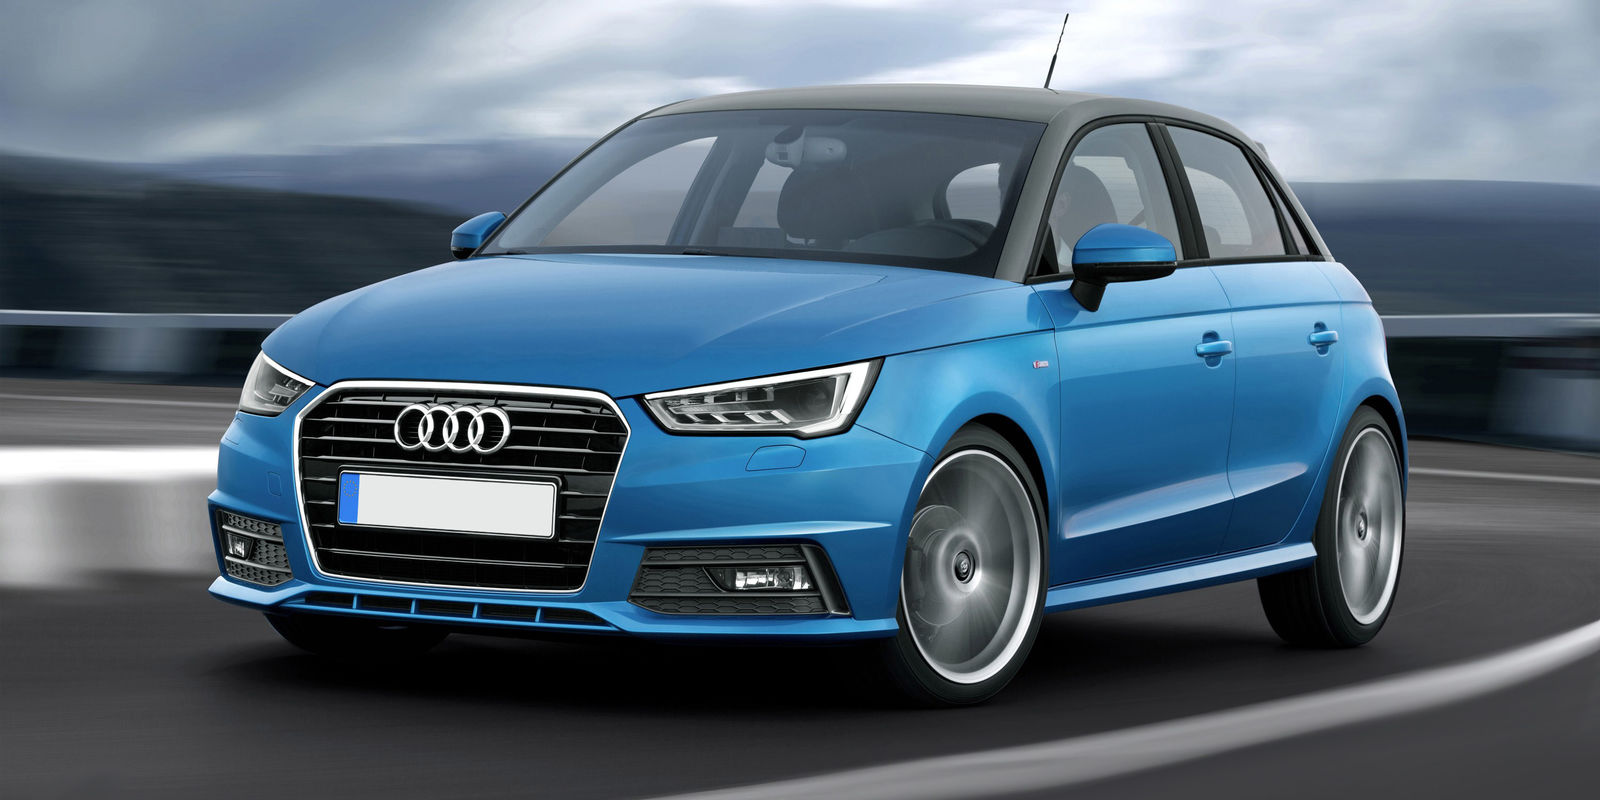 Nice wallpapers Audi A1 1600x800px